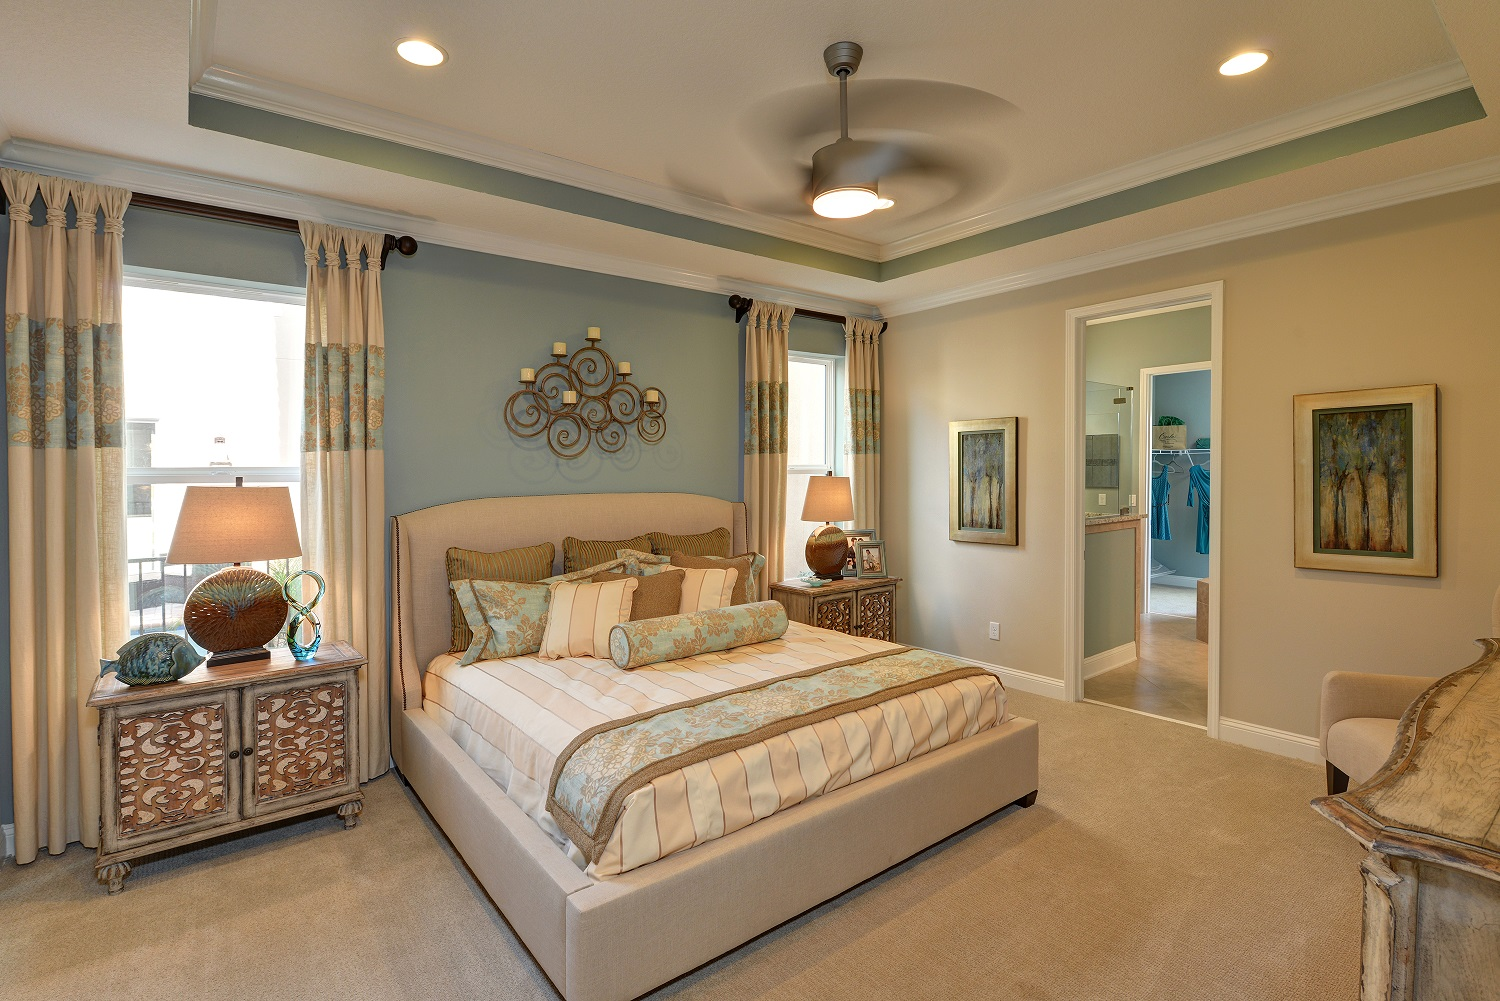 Sisler Johnston Interior Design Completes Ici Homes Lucca Model At Siena At Town Center What